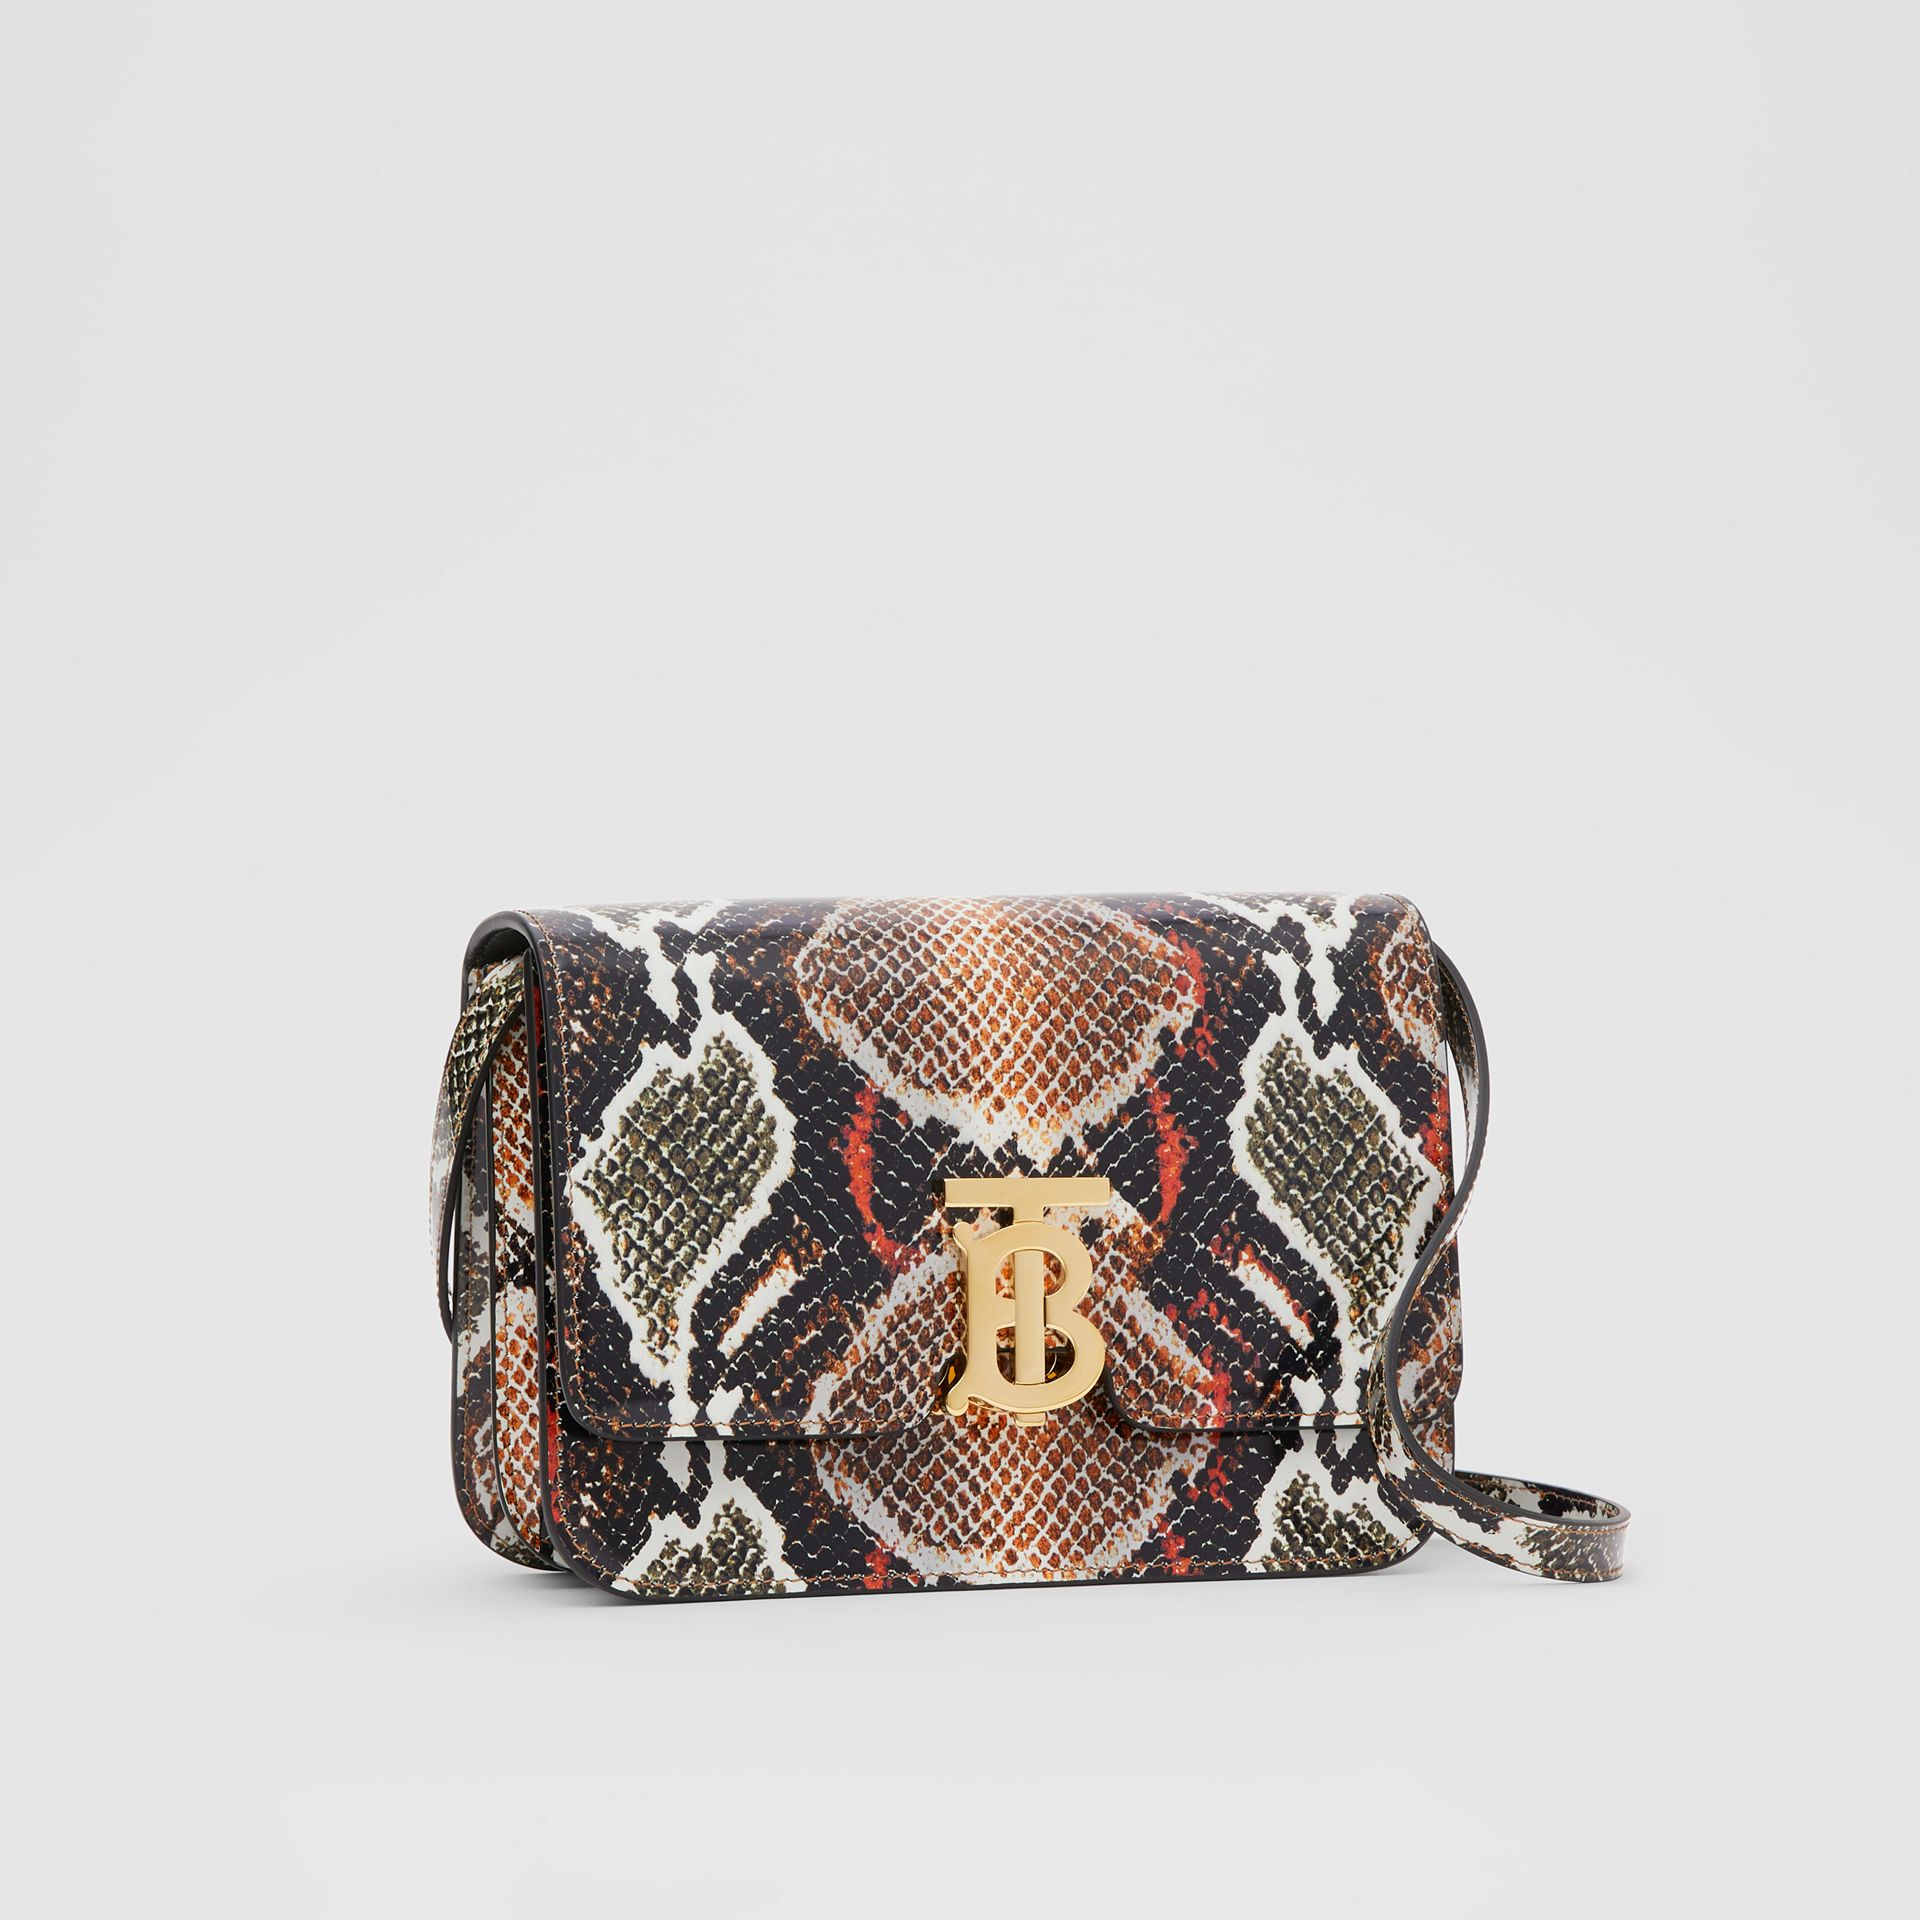 Small Python Print Leather TB Bag in Soft Cocoa - Women | Burberry - gallery image 6